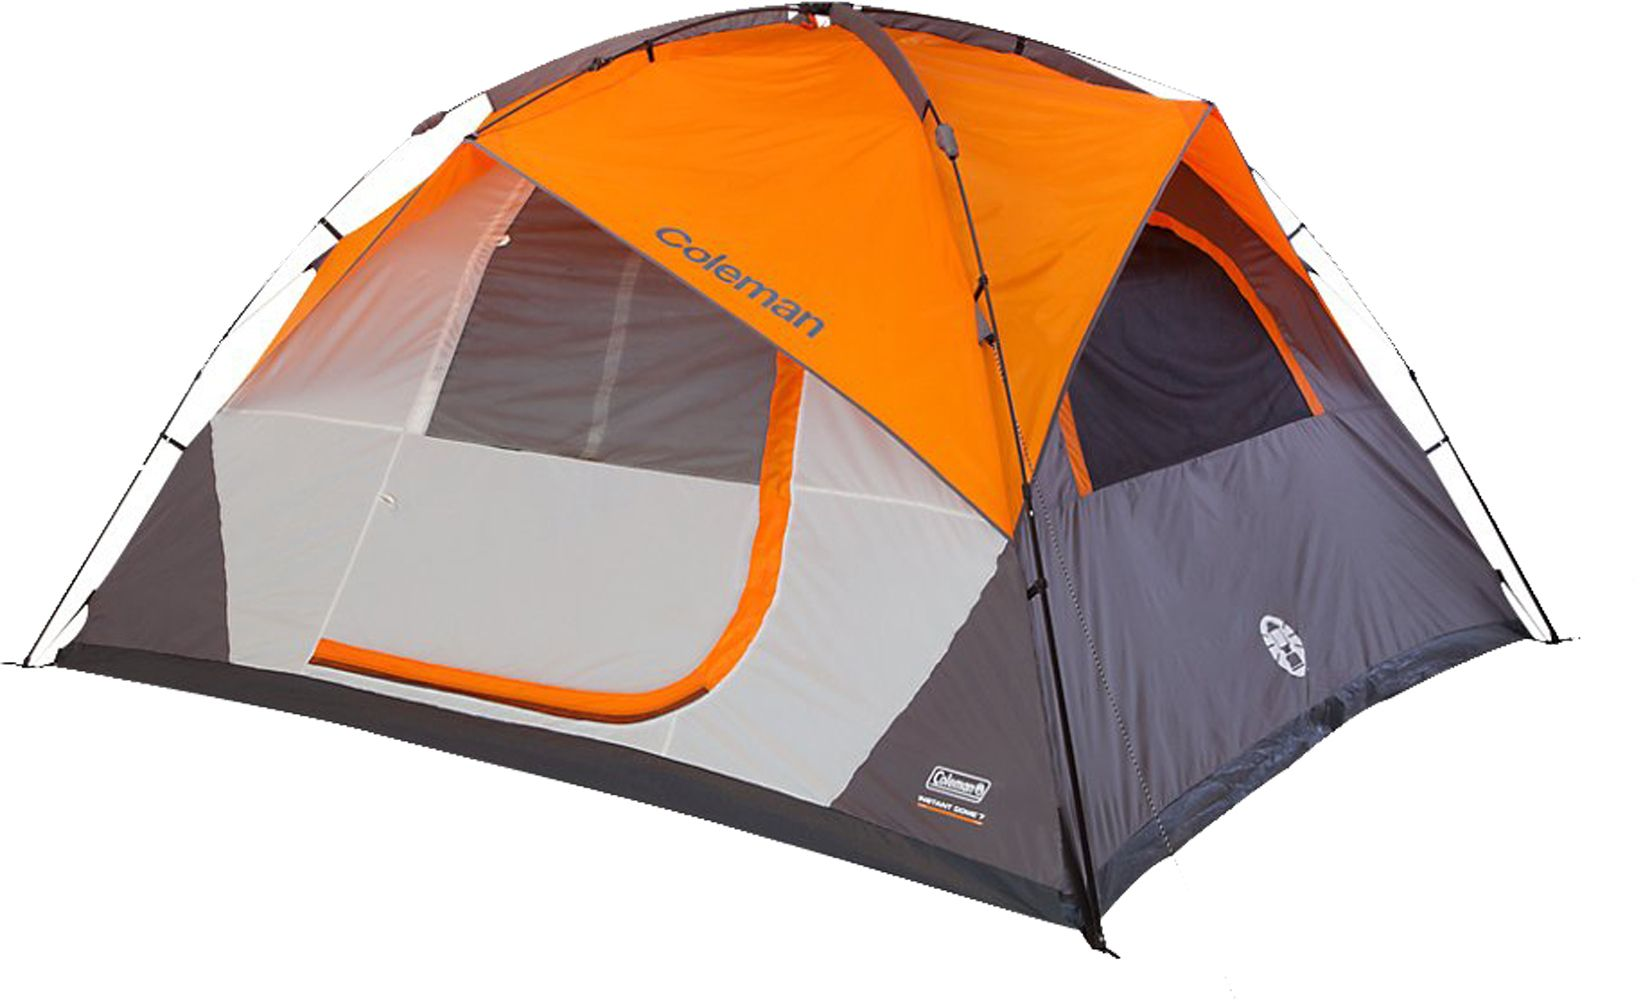 Product Image · Coleman Signature Instant Dome 7 Person Tent with Integrated Fly  sc 1 st  DICKu0027S Sporting Goods & Tents for Sale | Best Price Guarantee at DICKu0027S